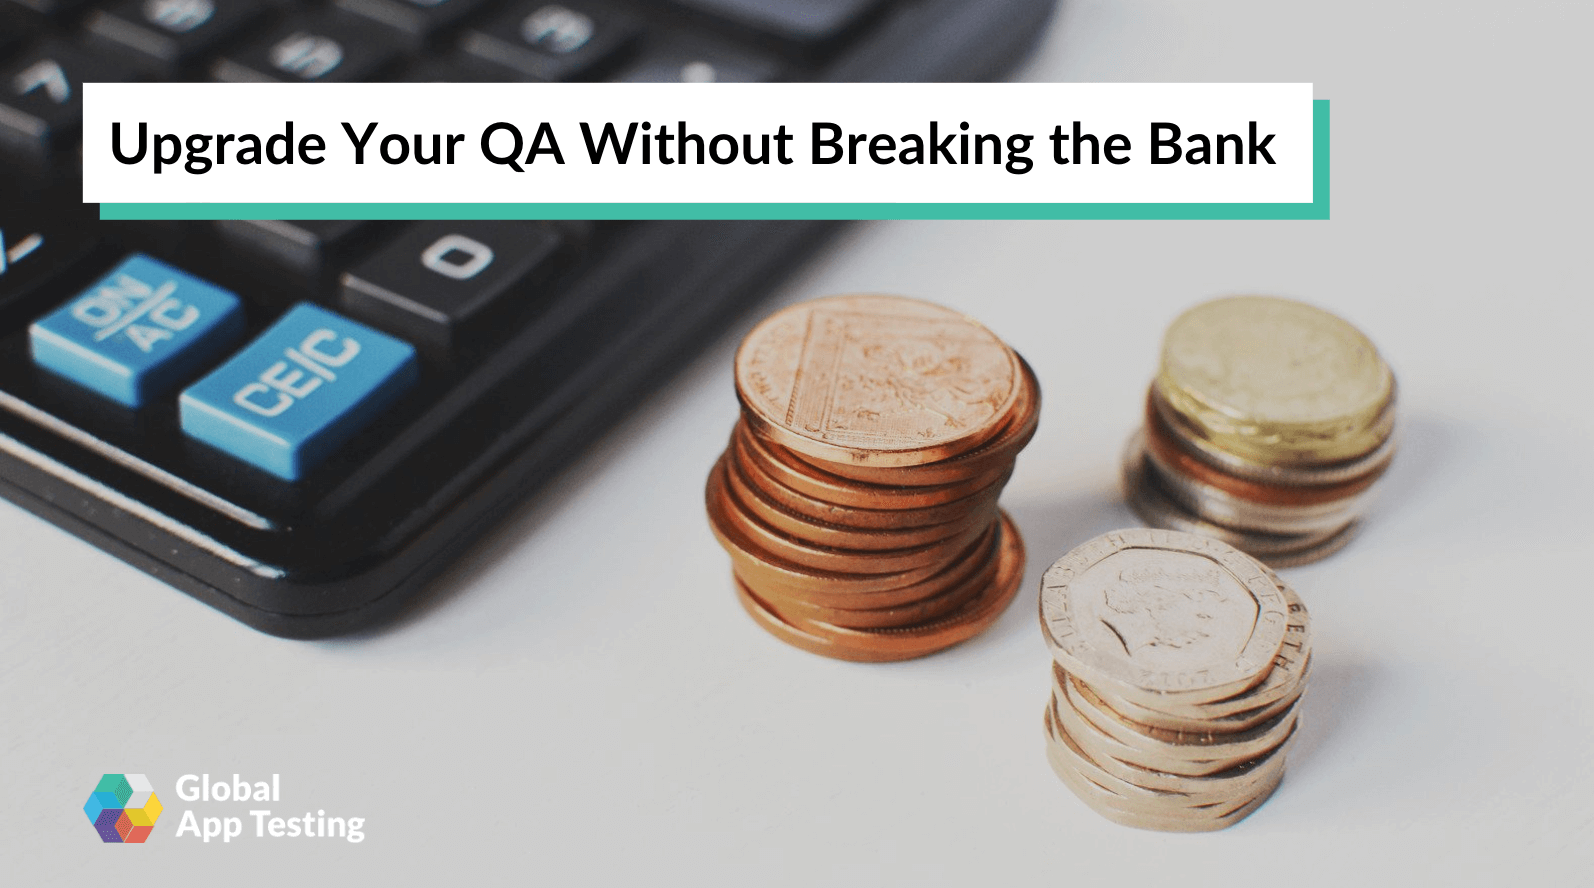 Upgrade Your QA Without Breaking the Bank